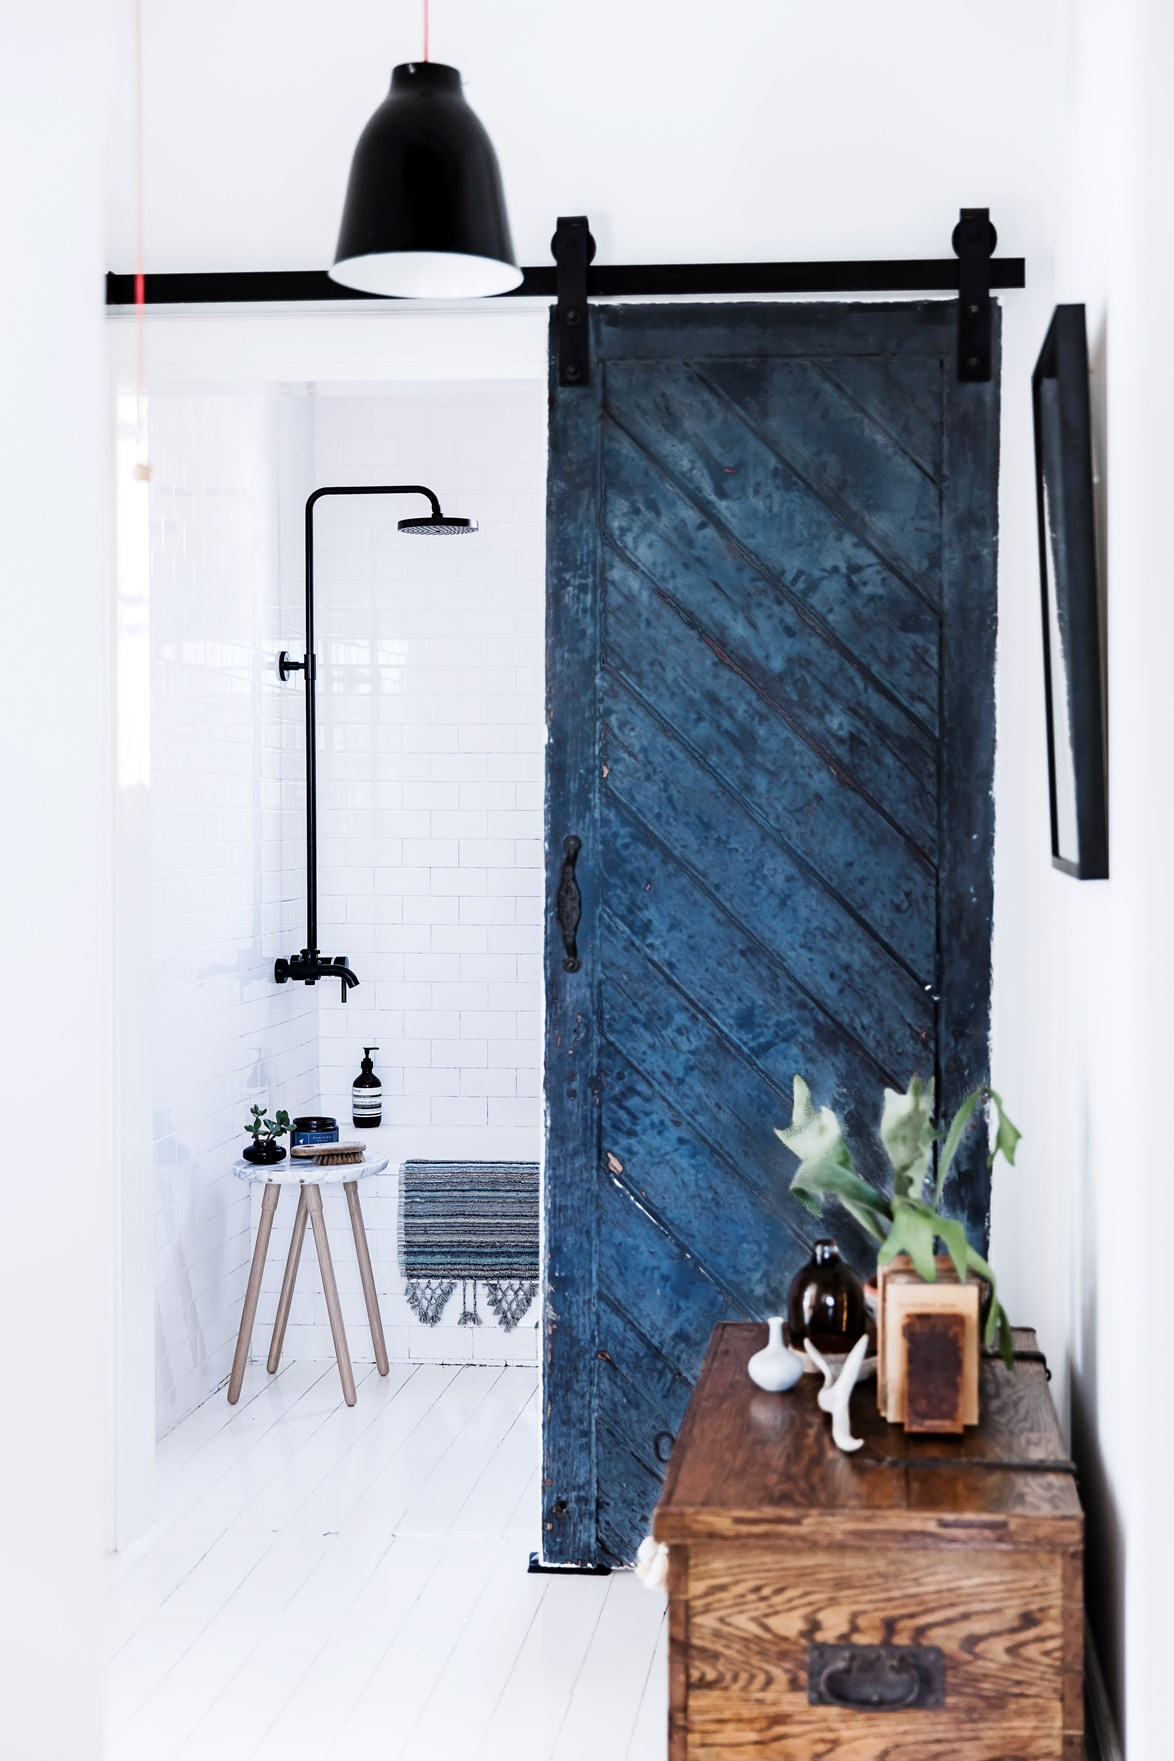 "Subway tiles and timber flooring are both staples of country style bathrooms. In this [Scandi style Sydney apartment](https://www.homestolove.com.au/sydney-apartment-gets-swedish-summer-house-makeover-3050|target=""_blank""), the farmhouse look has been given a contemporary twist with matte black tapware and a sliding barn door in a striking shade of indigo. *Photo: Maree Homer / Styling: Kerrie-Ann Jones / Story: Real Living*"